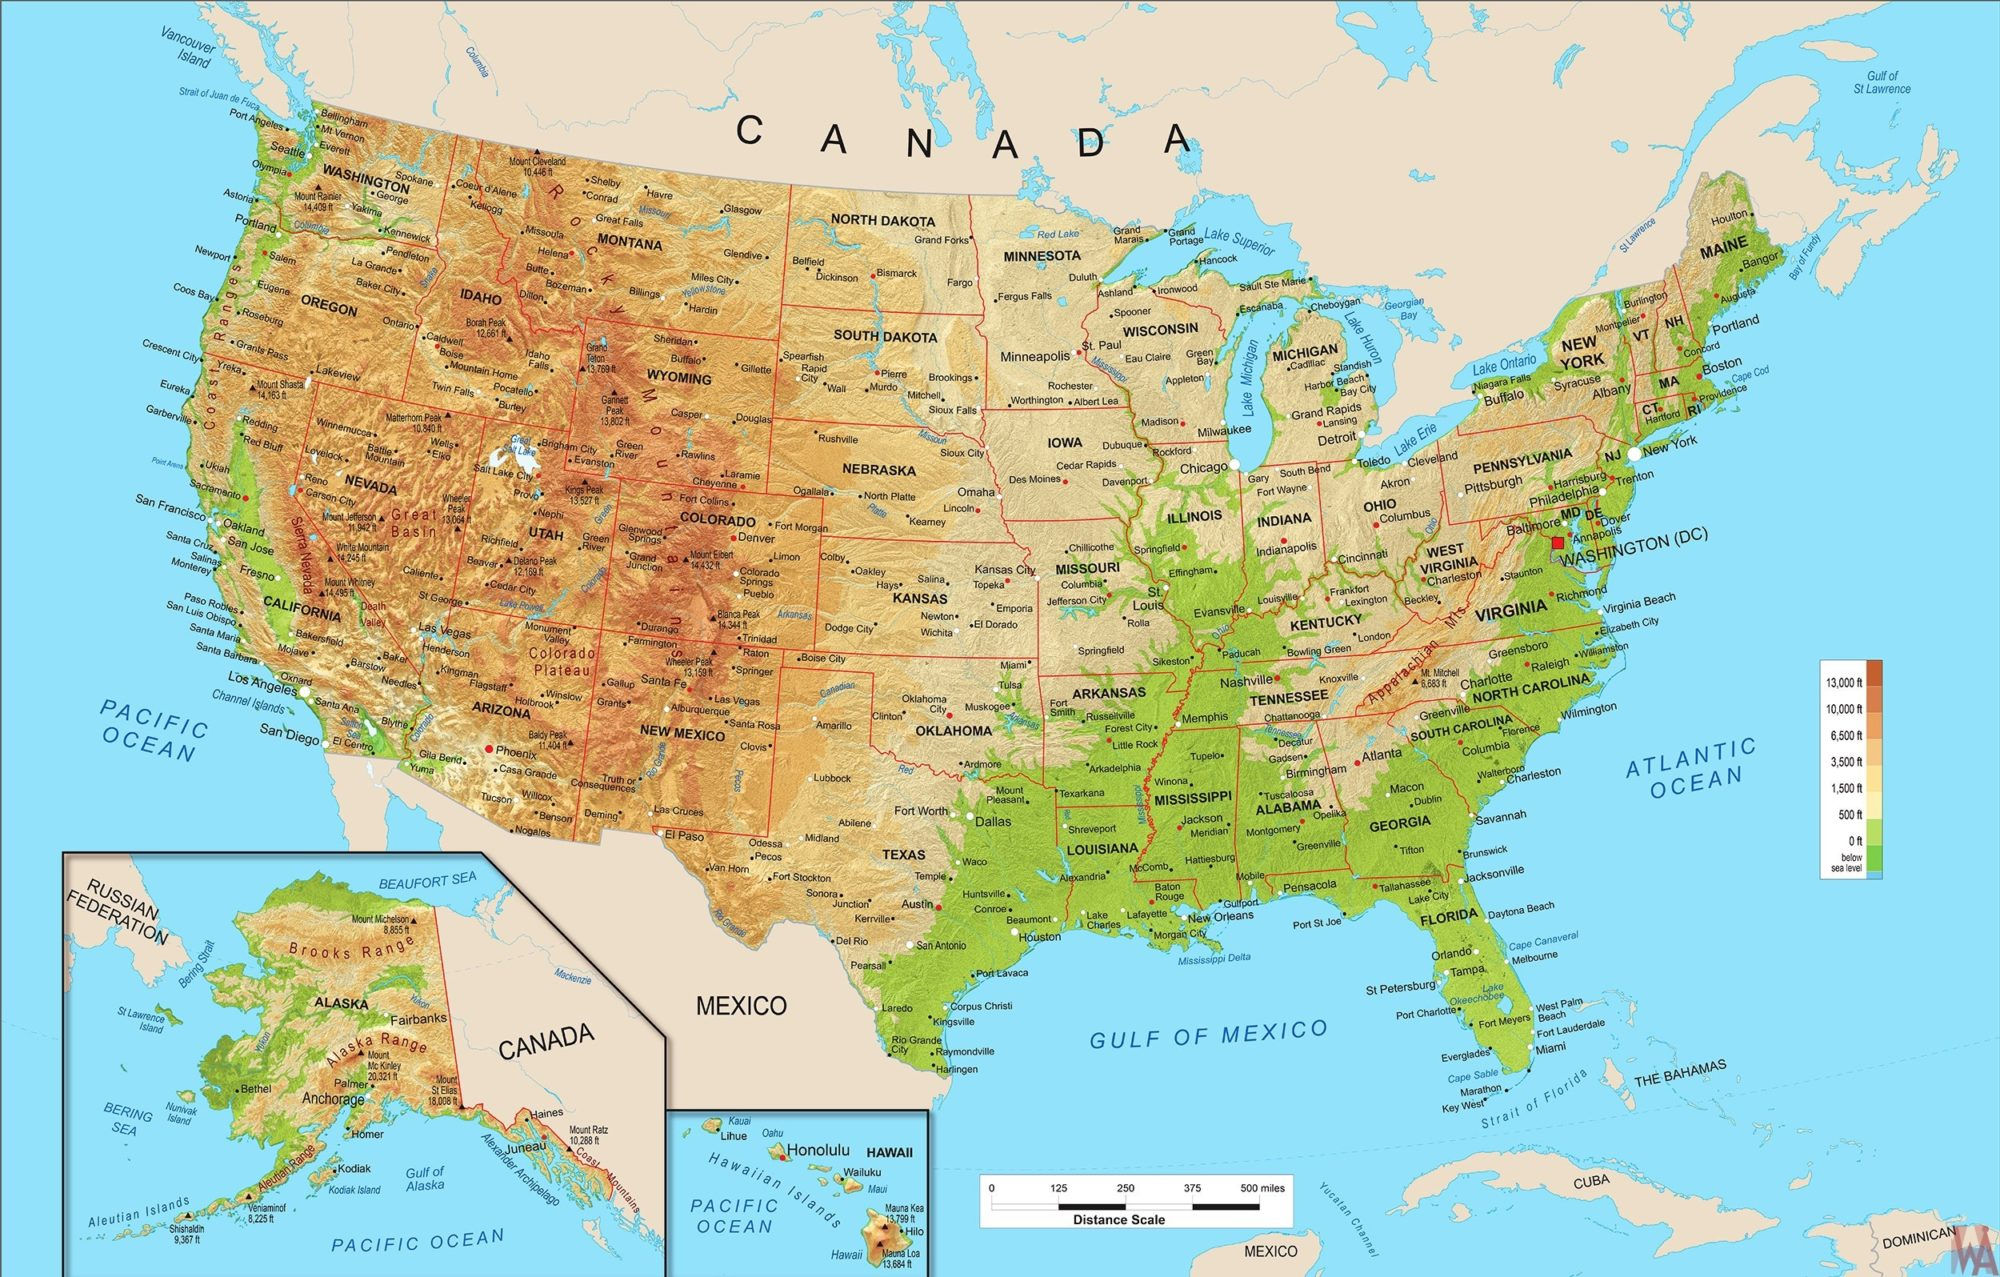 Geographical Map Of The United States Large Political, physical, geographical map of United States of